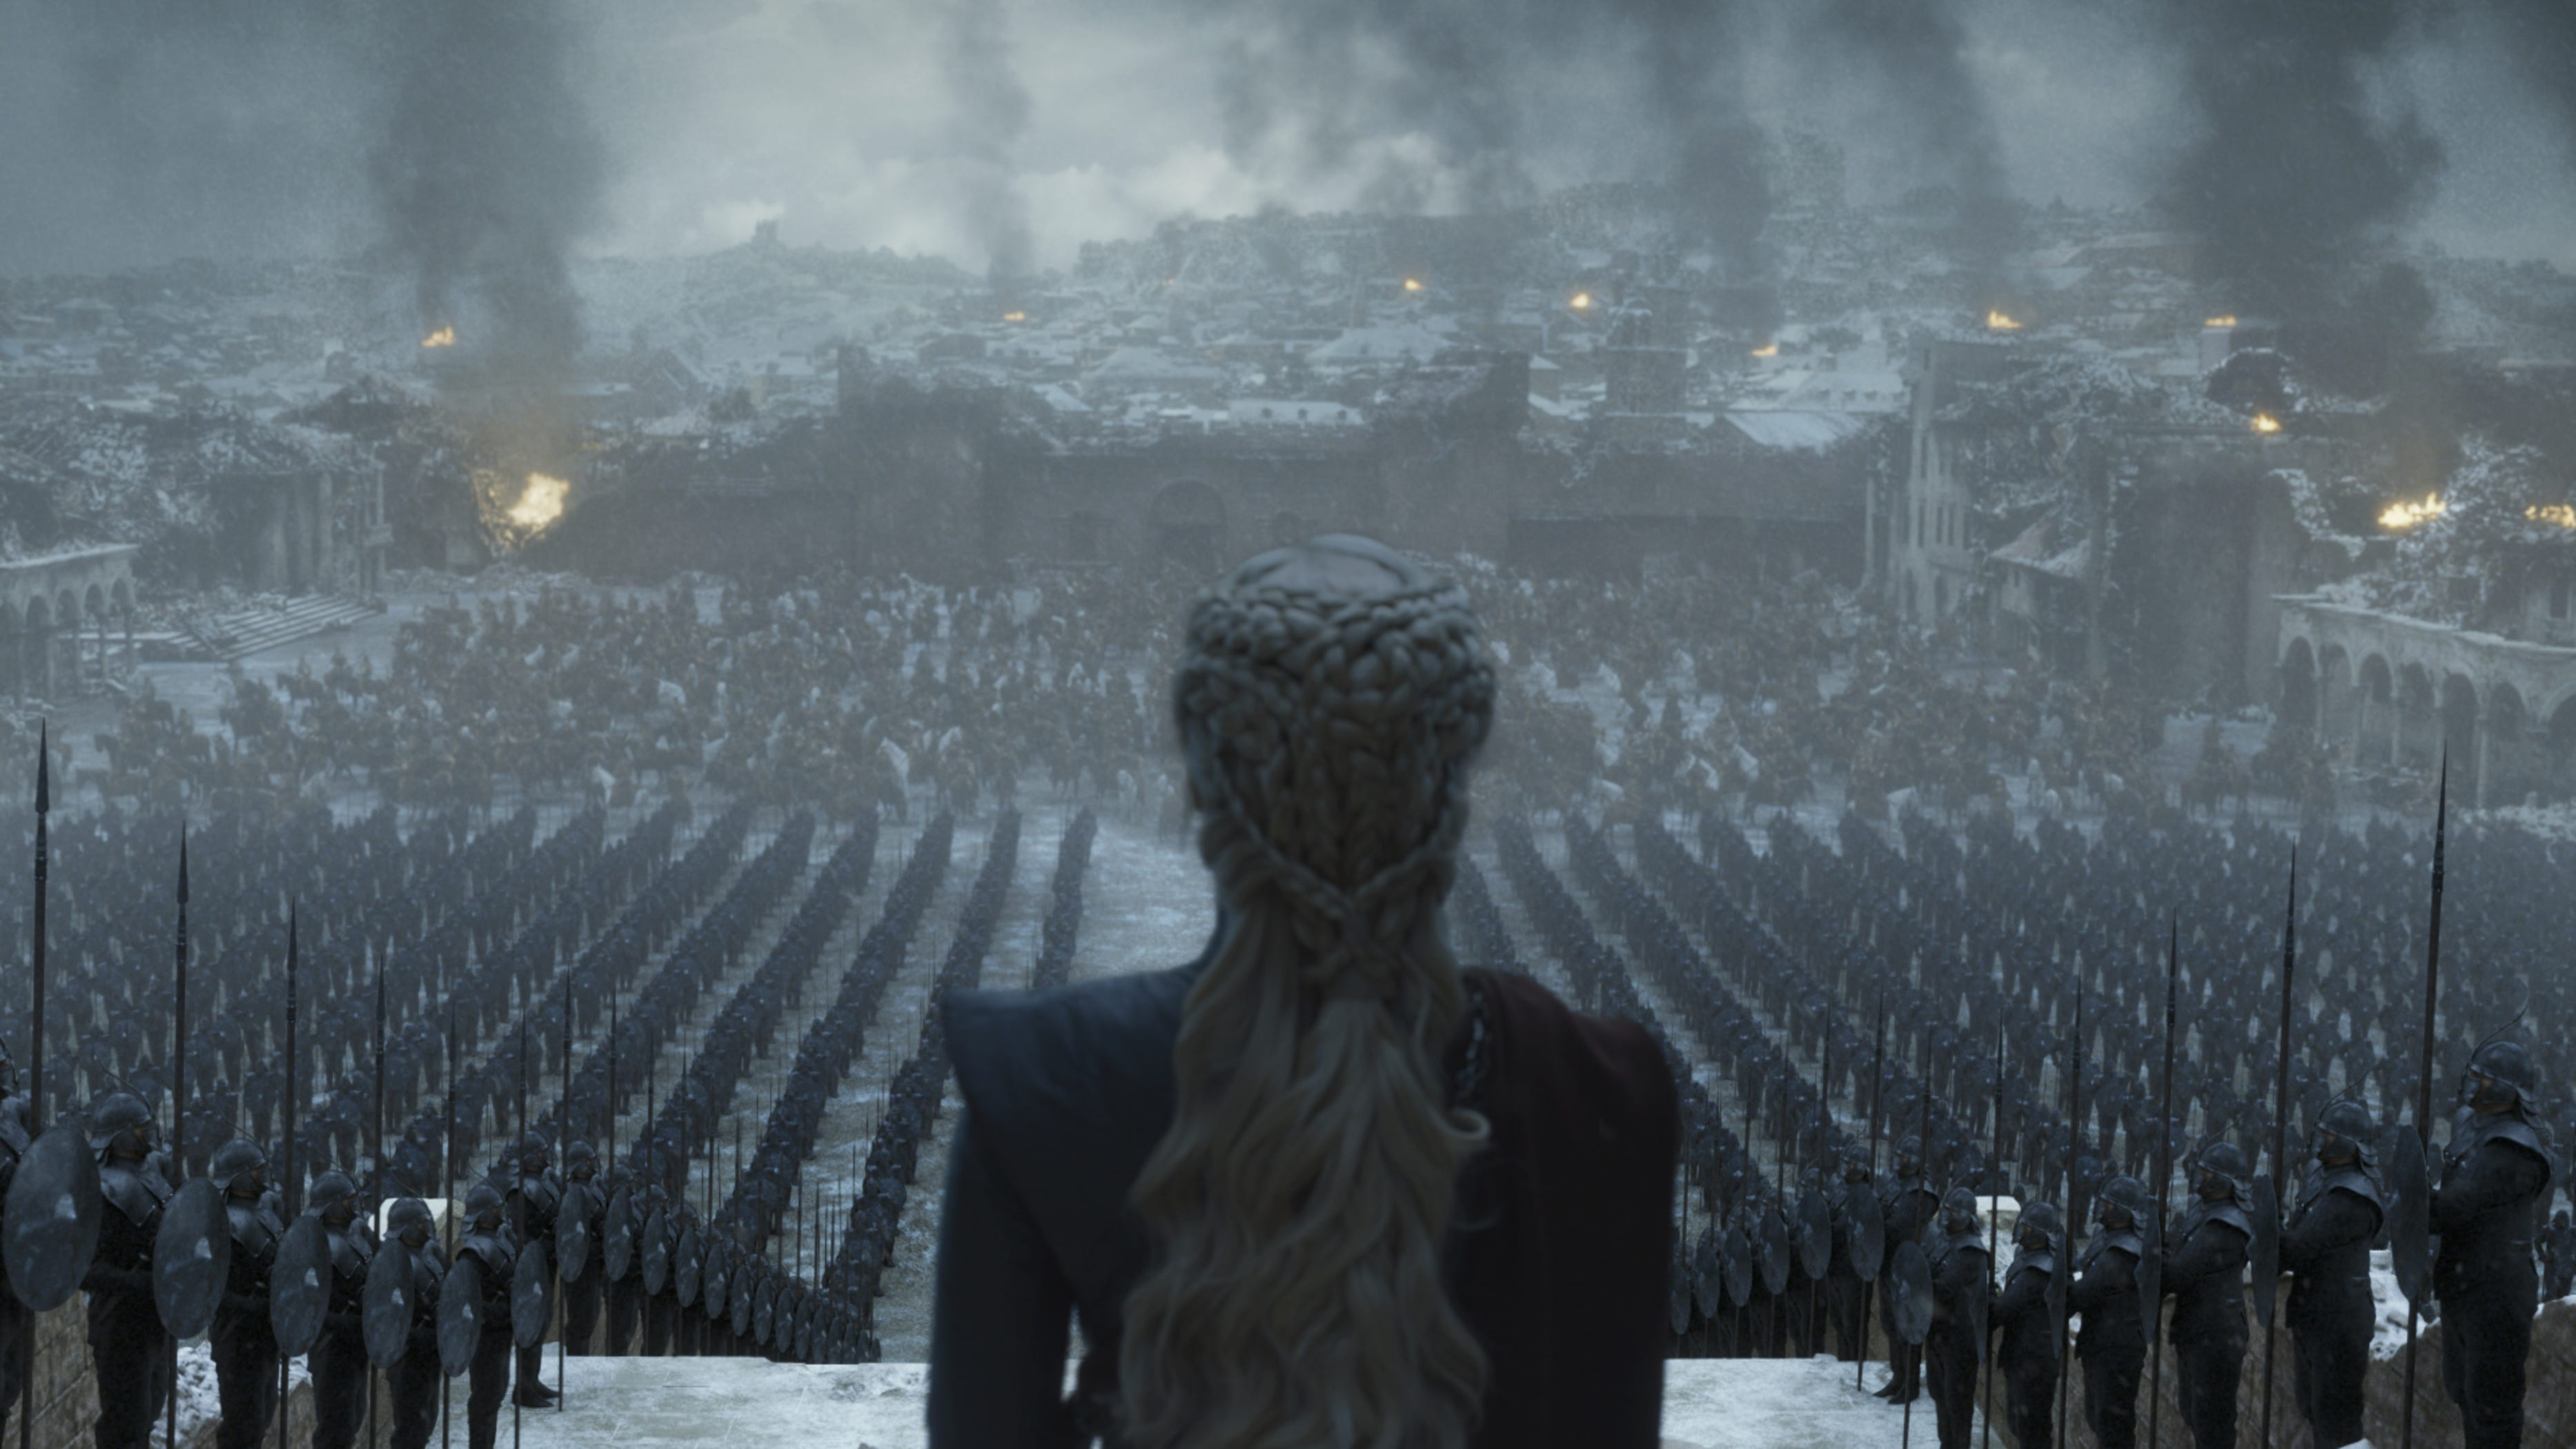 usatoday.com - Kelly Lawler, USA TODAY - 'Game of Thrones' series finale recap: A disaster ending that fans didn't deserve